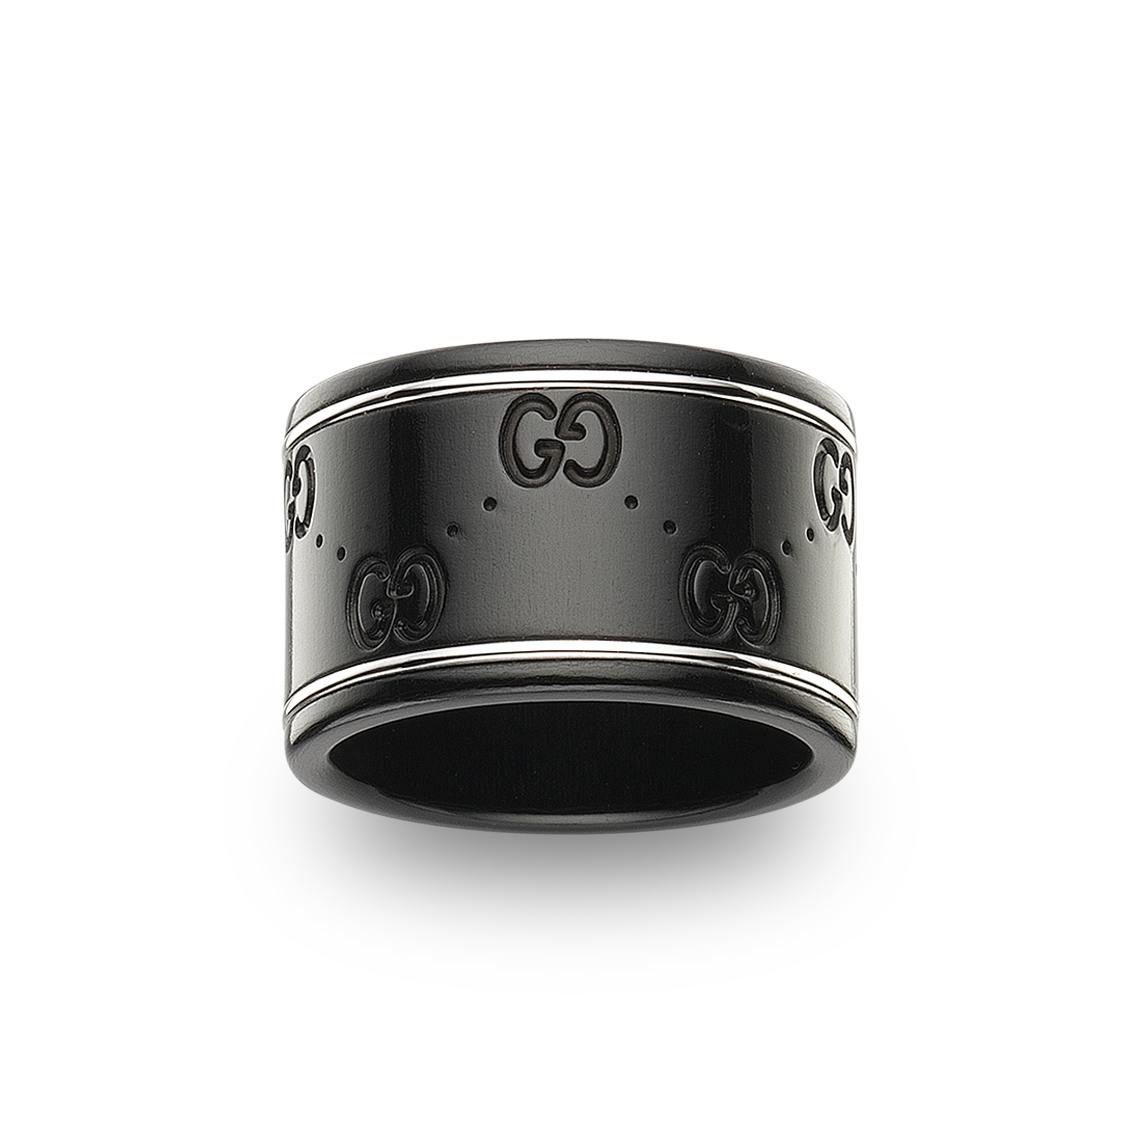 637e6dcb0 Anillo Gucci Icon Mediano - Gucci - Icon